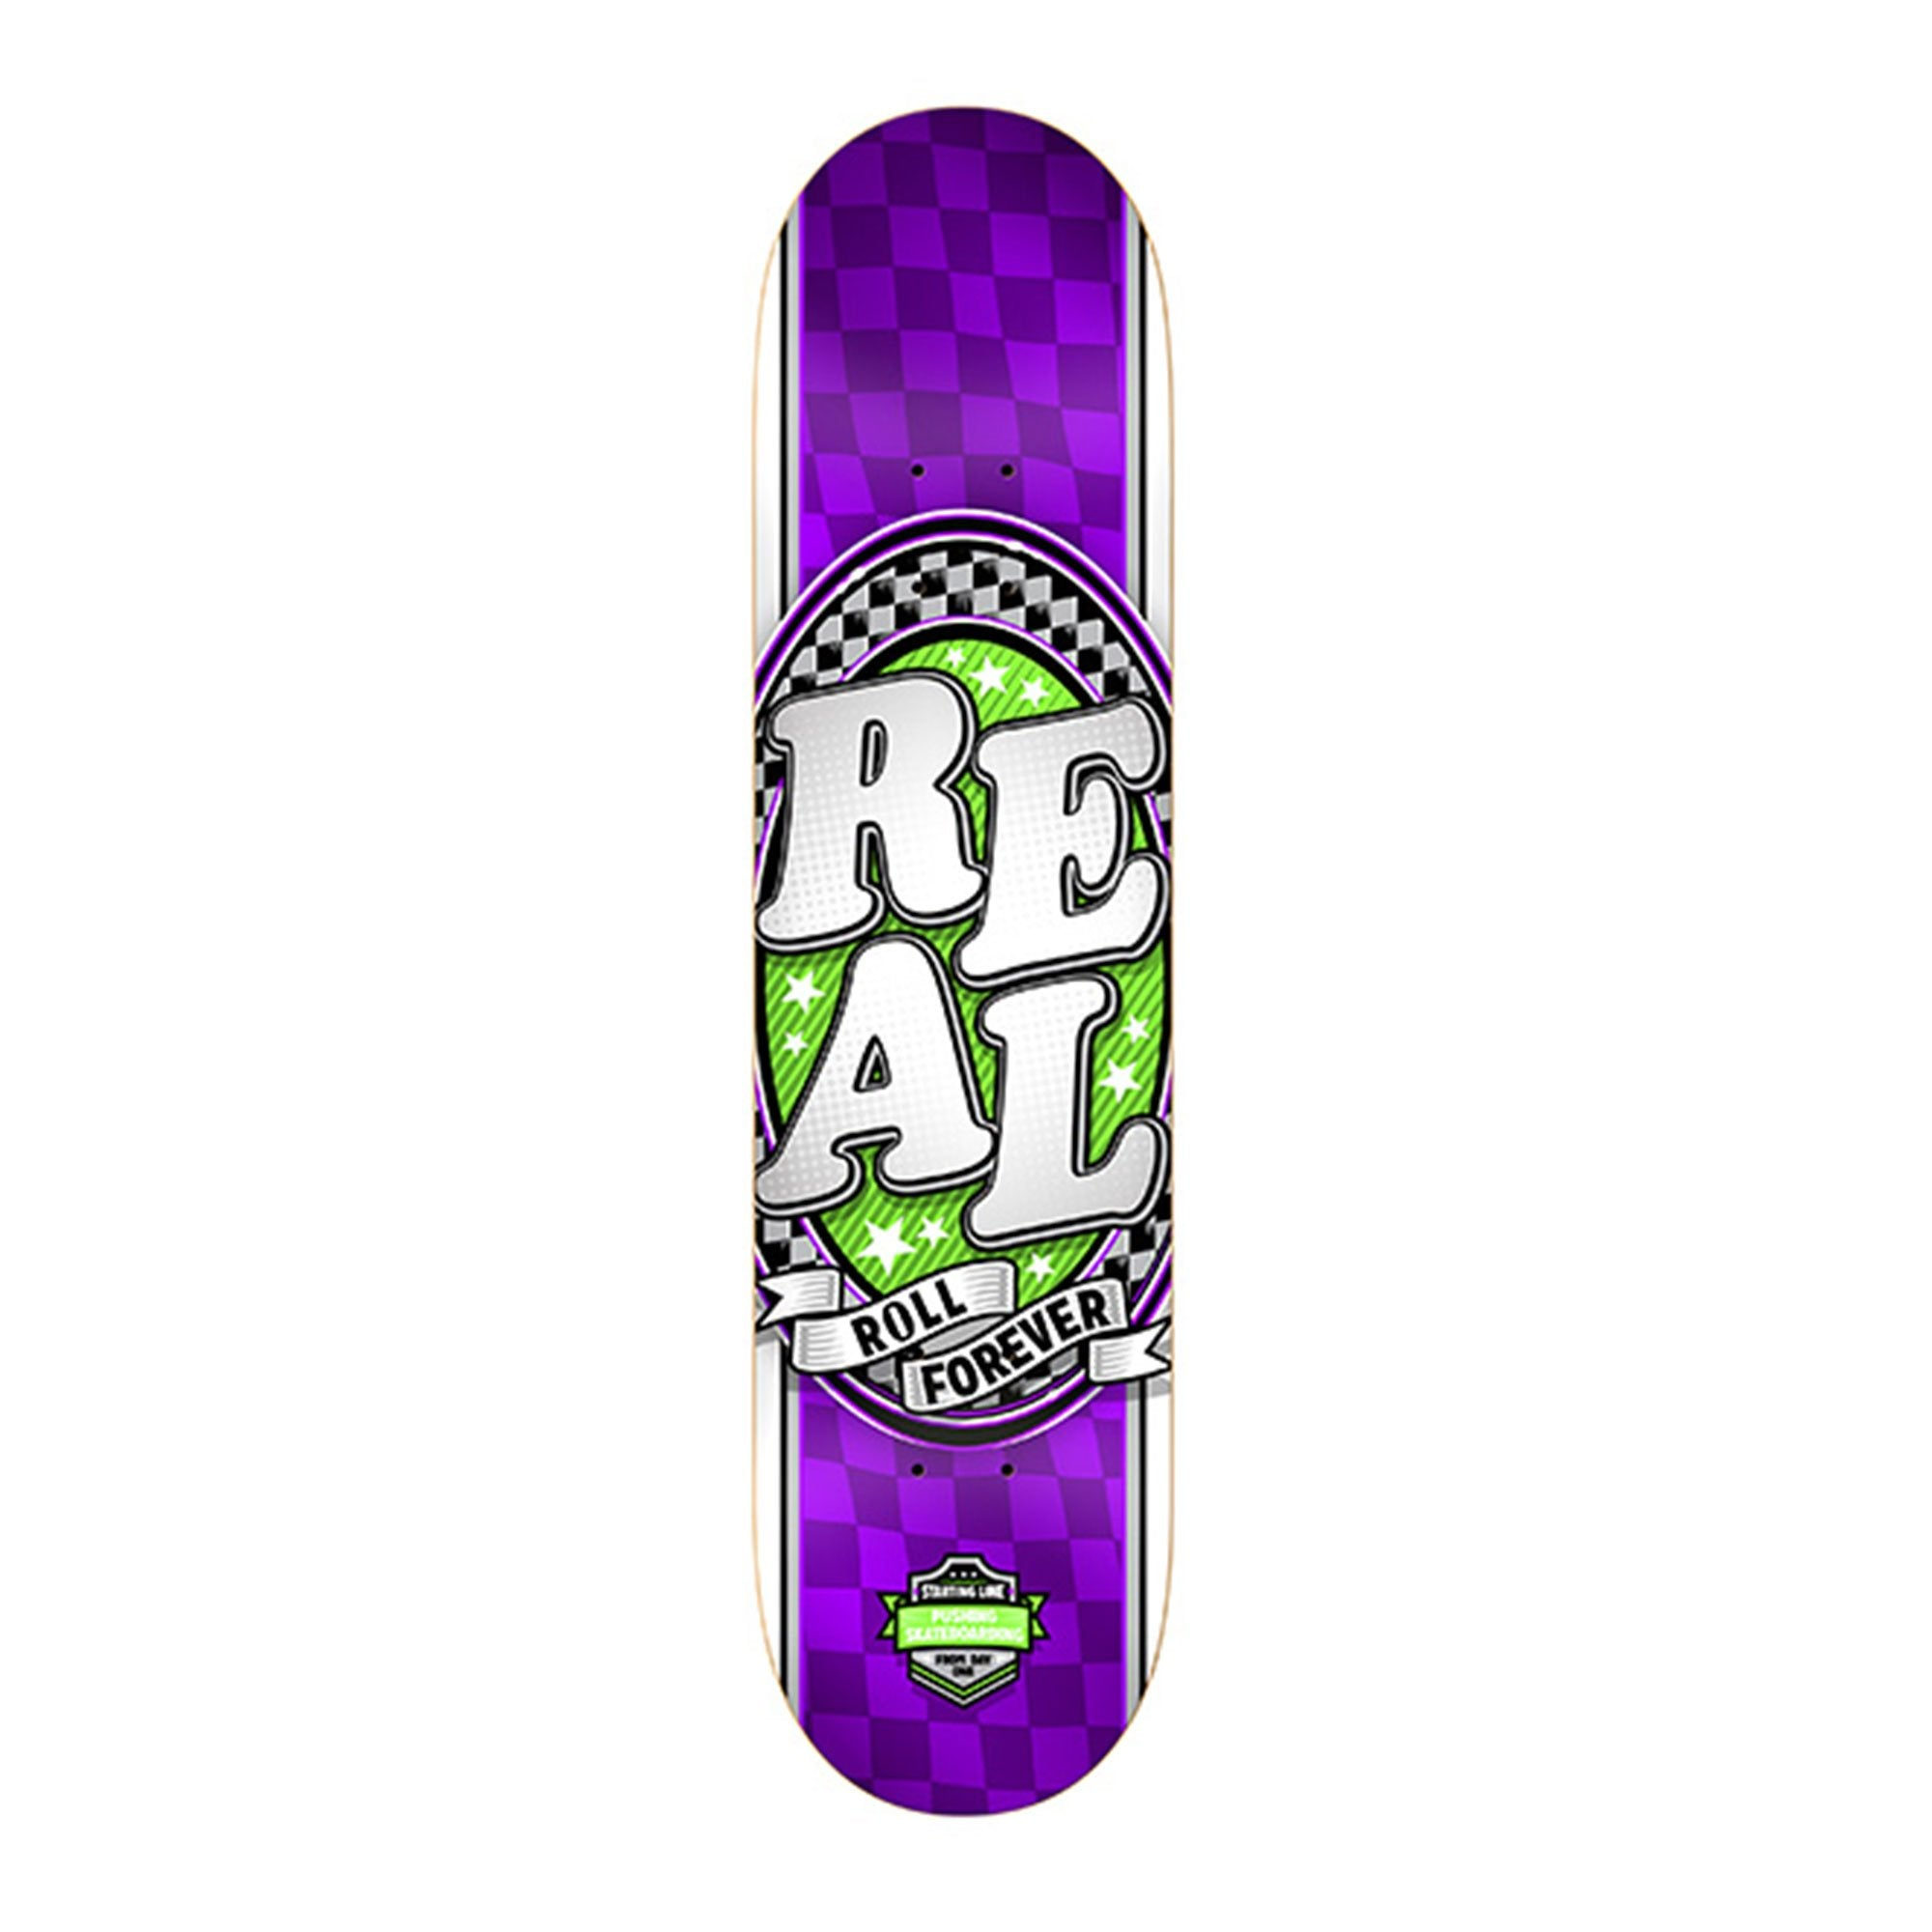 Real Startline S Deck Product Photo #1